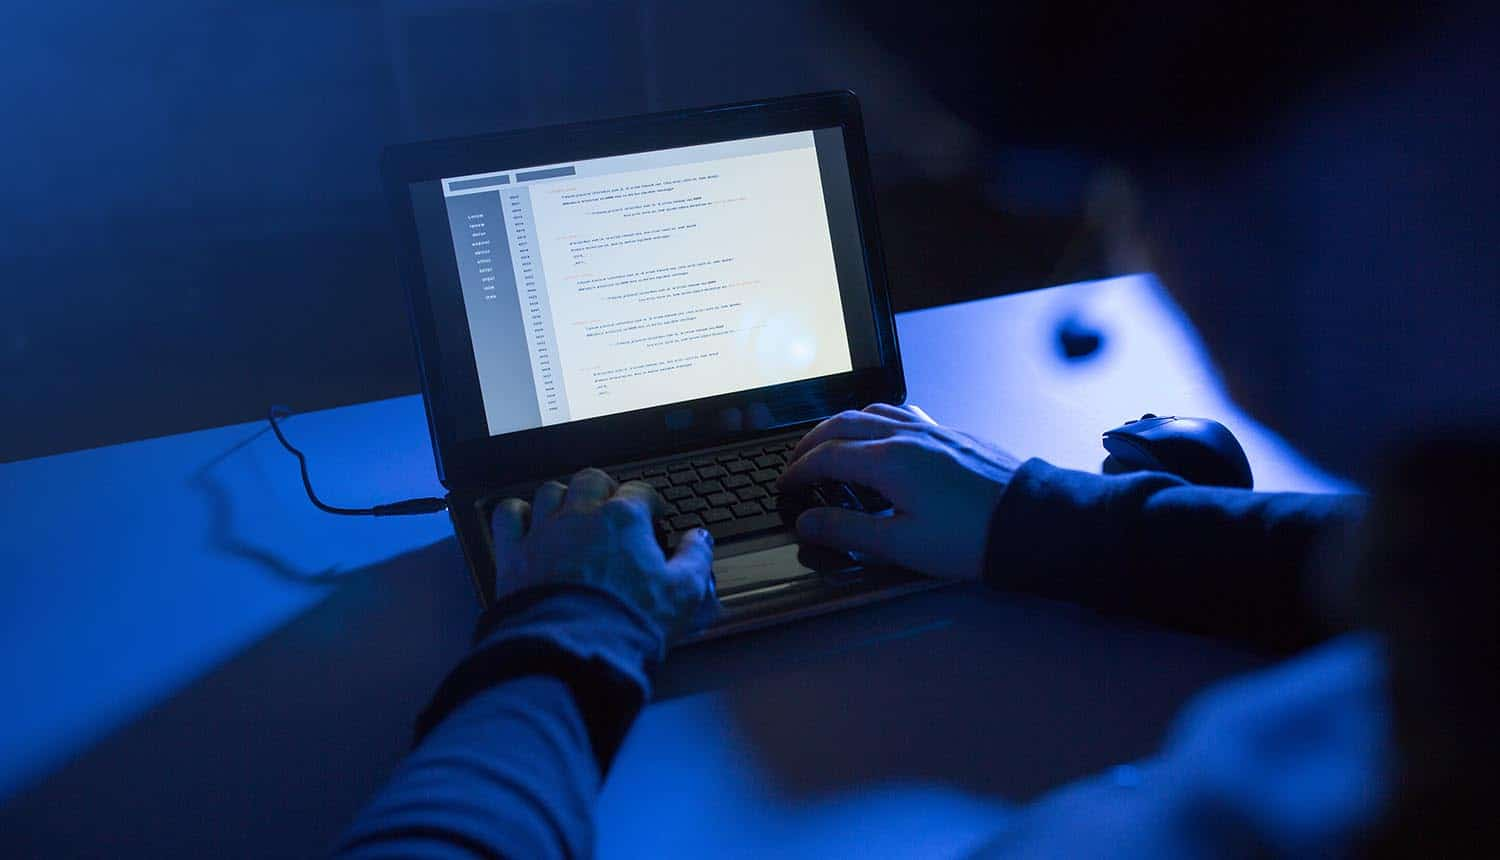 Hands of hacker in dark room showing need for identity theft protection services